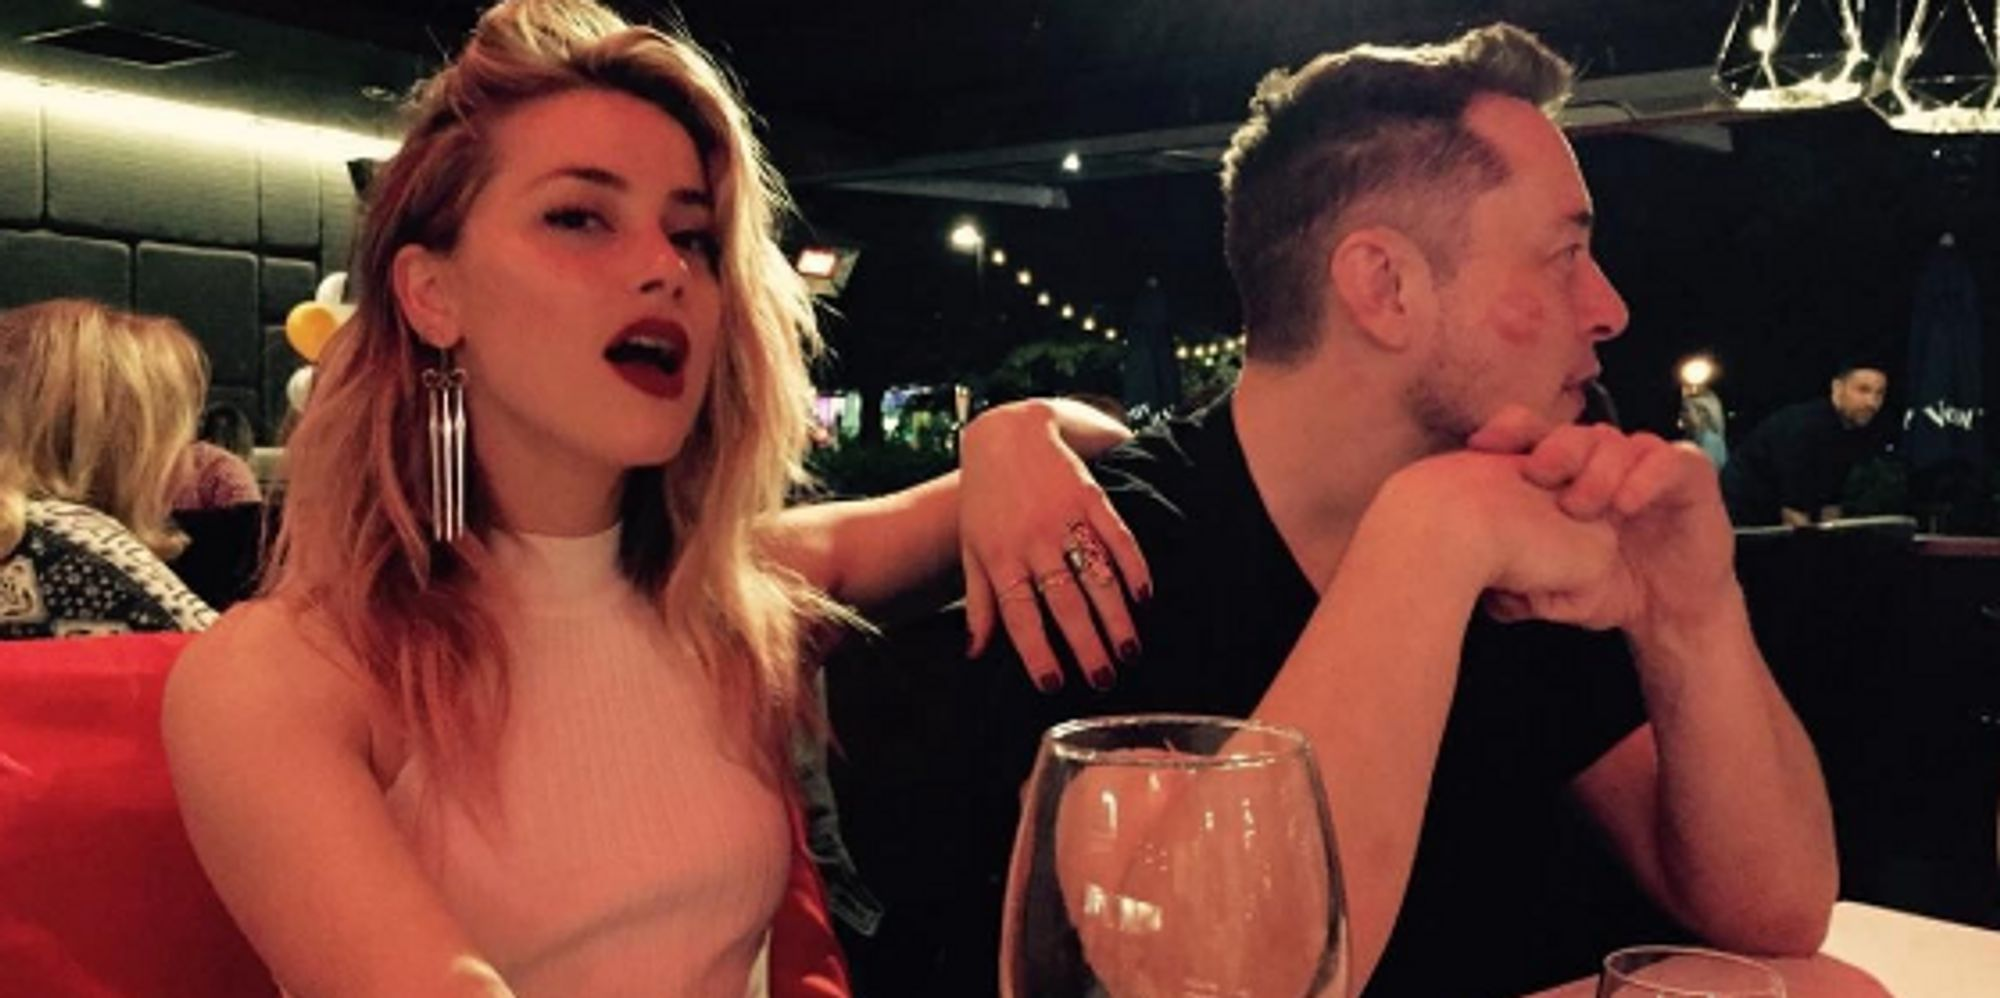 Amber Heard Appears To Confirm Relationship With Tech Visionary Elon Musk